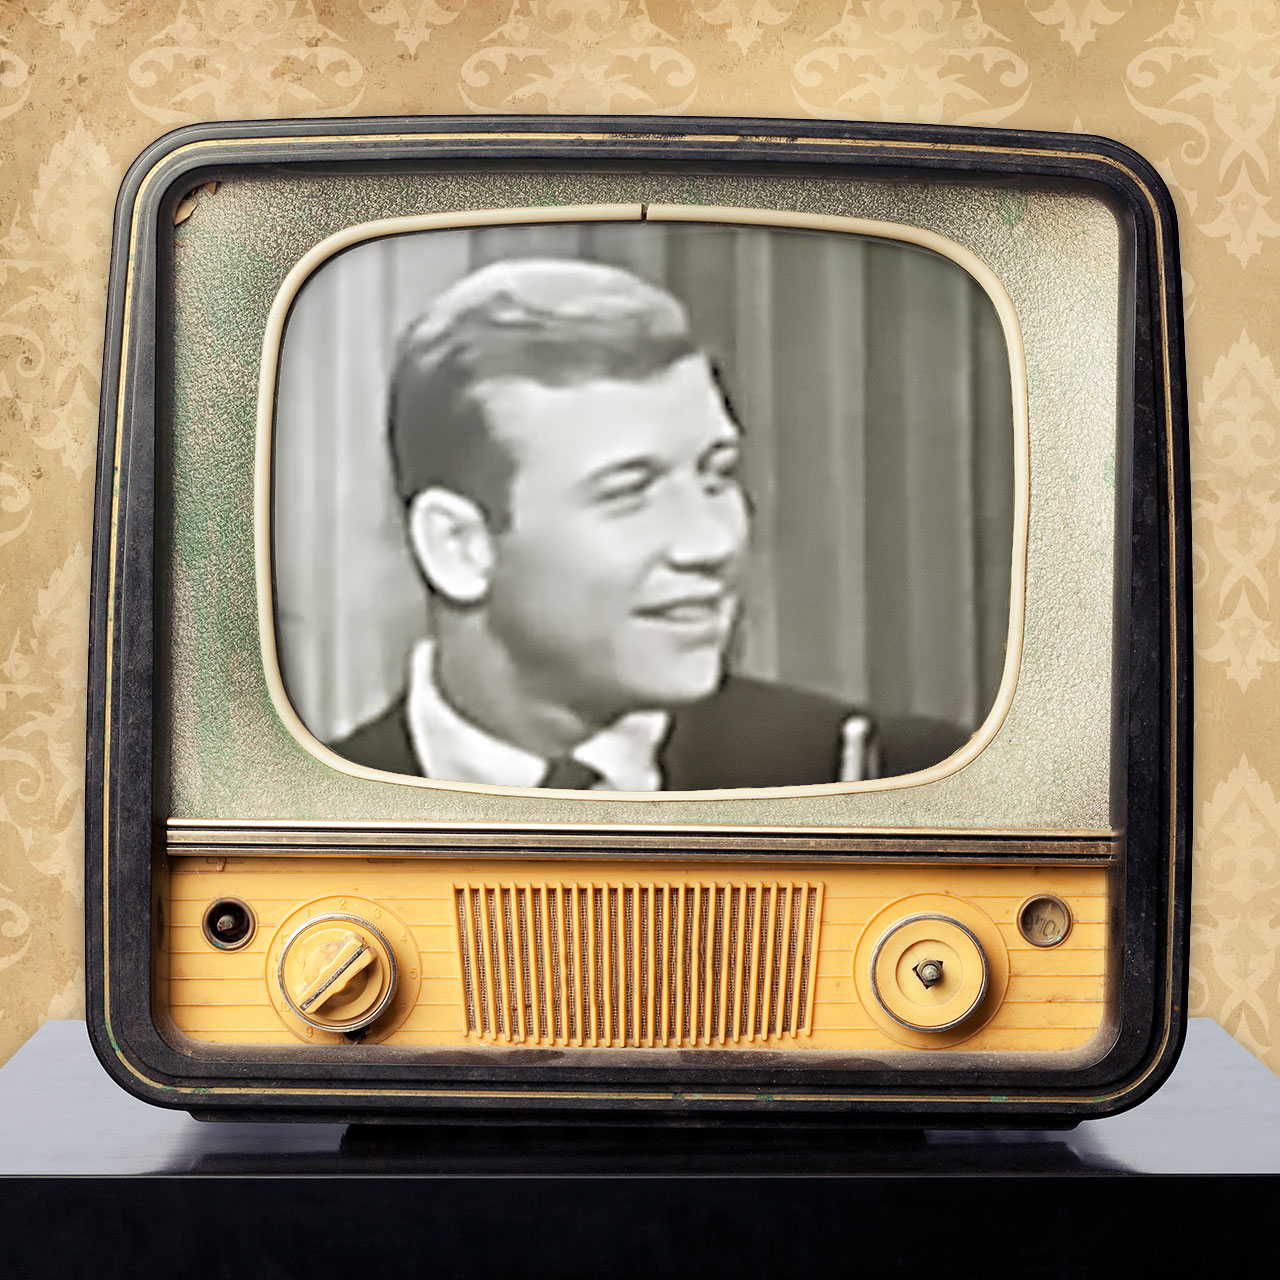 Yankees slugger Mickey Mantle on What's My Line? in 1954